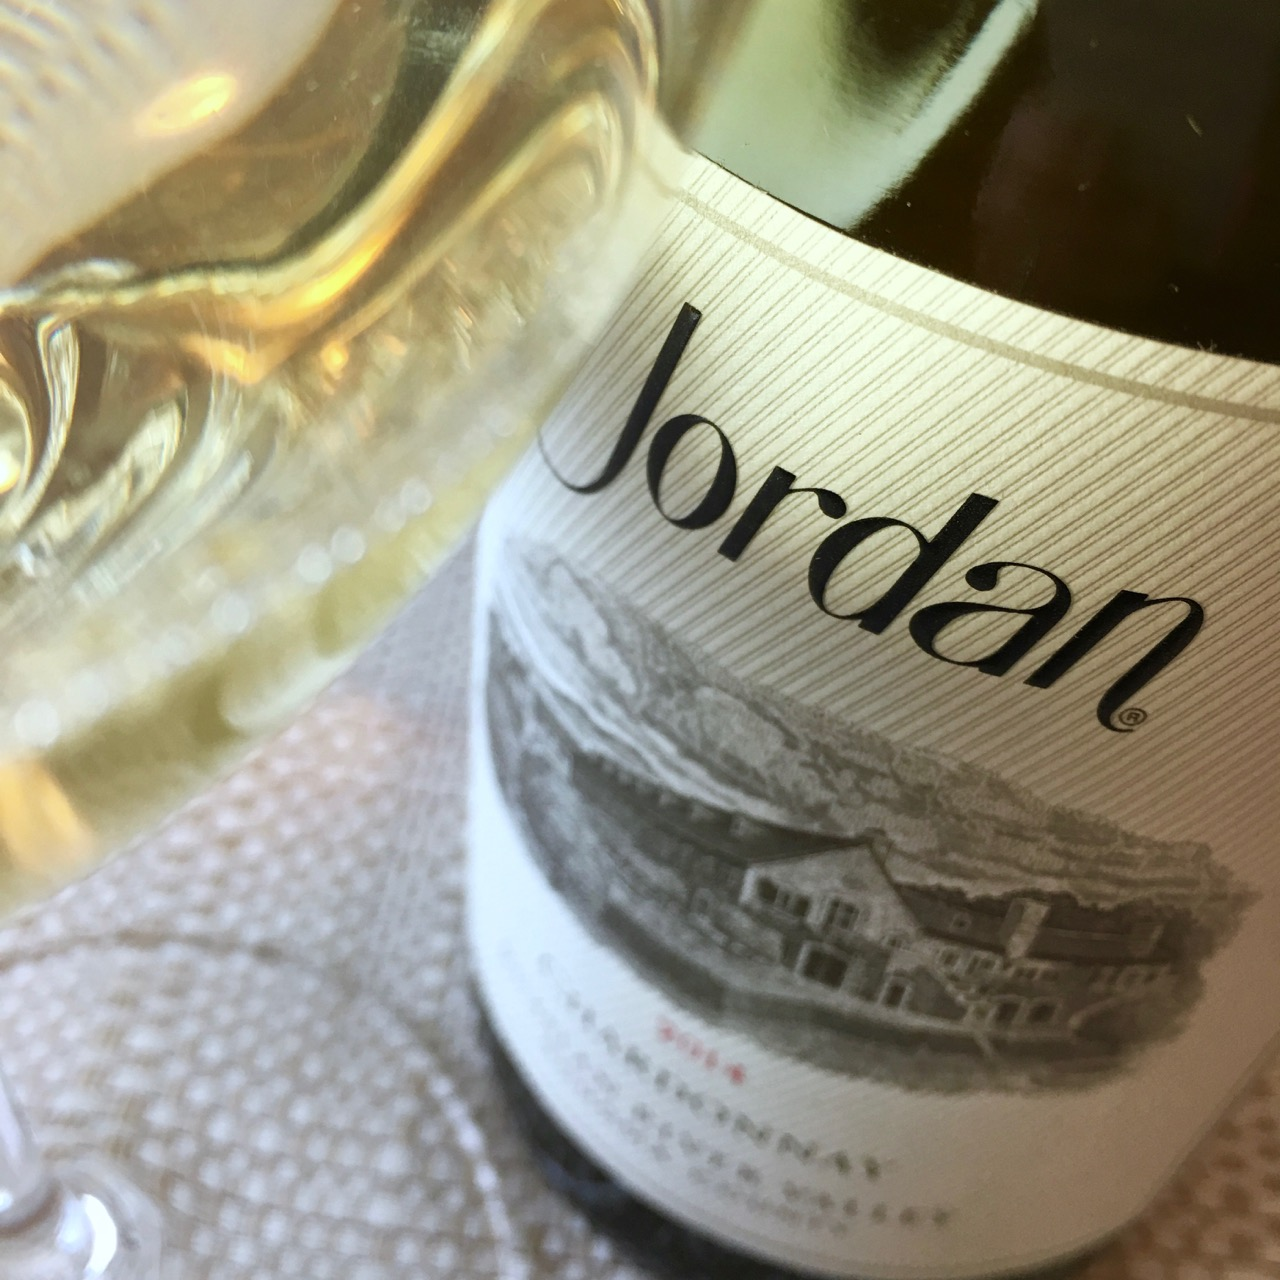 2014 Jordan Vineyard and Winery Chardonnay Russian River Valley, Sonoma County